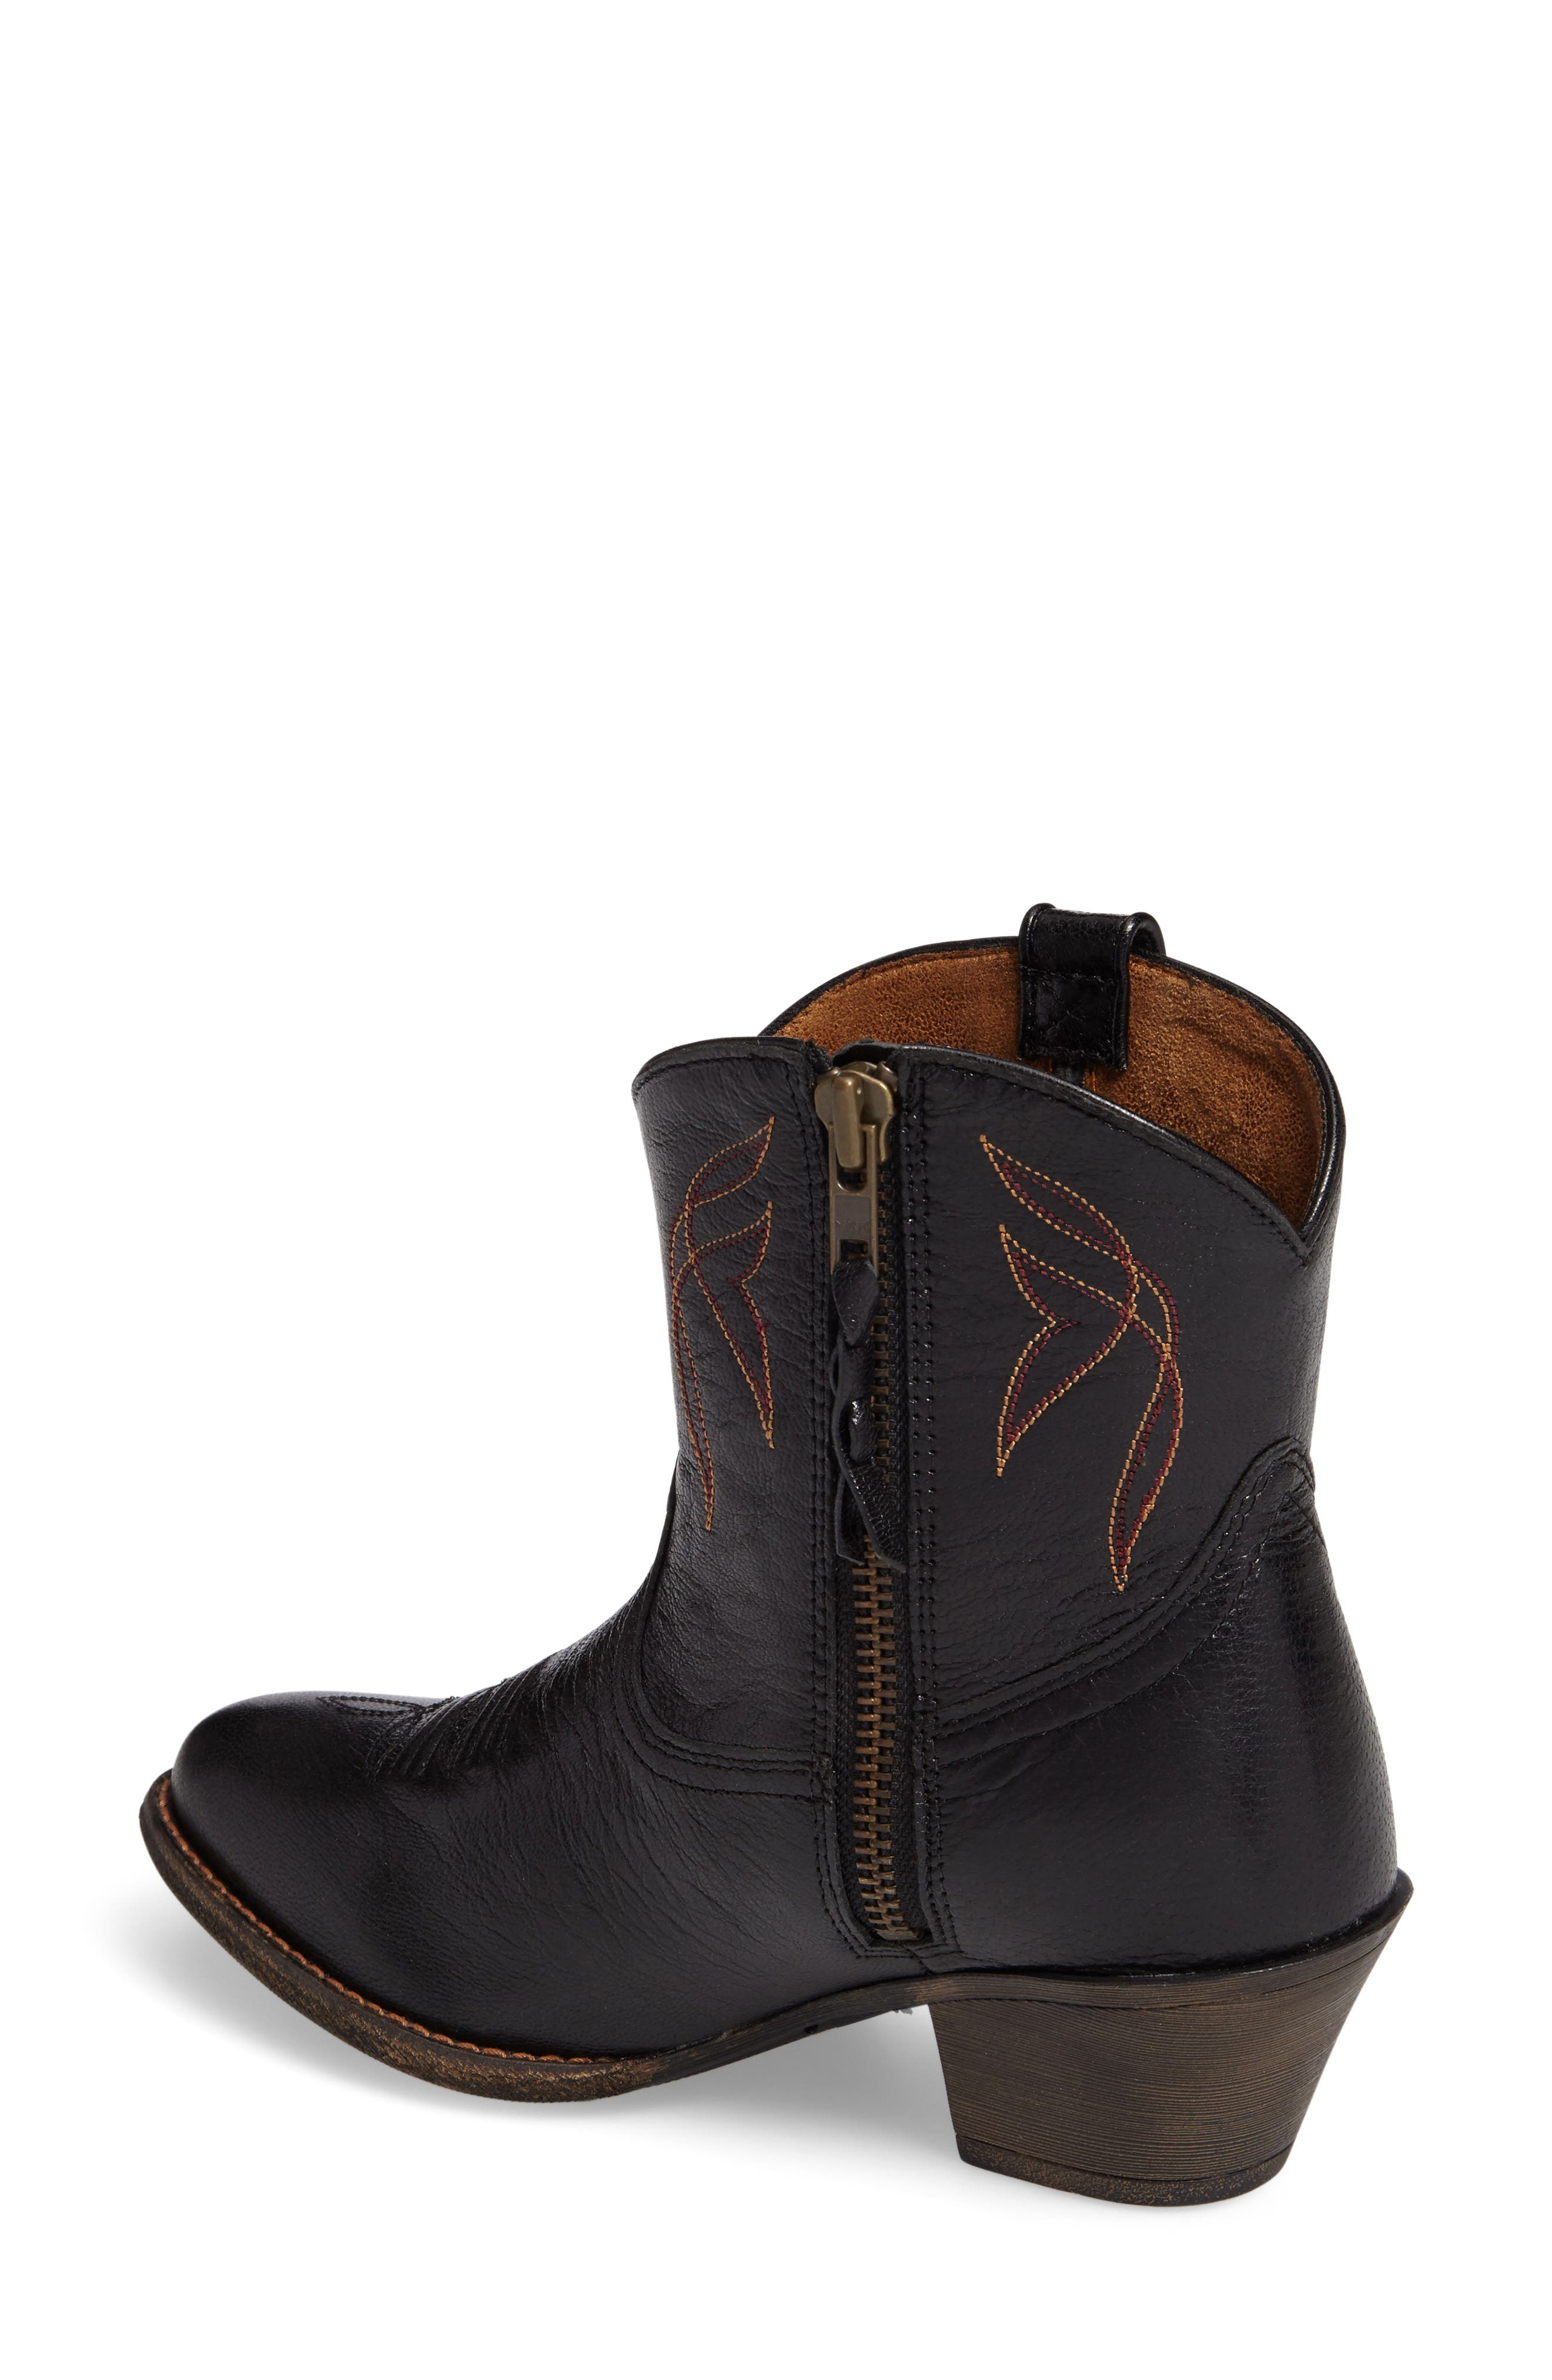 Darlin Short Western Boot,                             Alternate thumbnail 2, color,                             OLD BLACK LEATHER